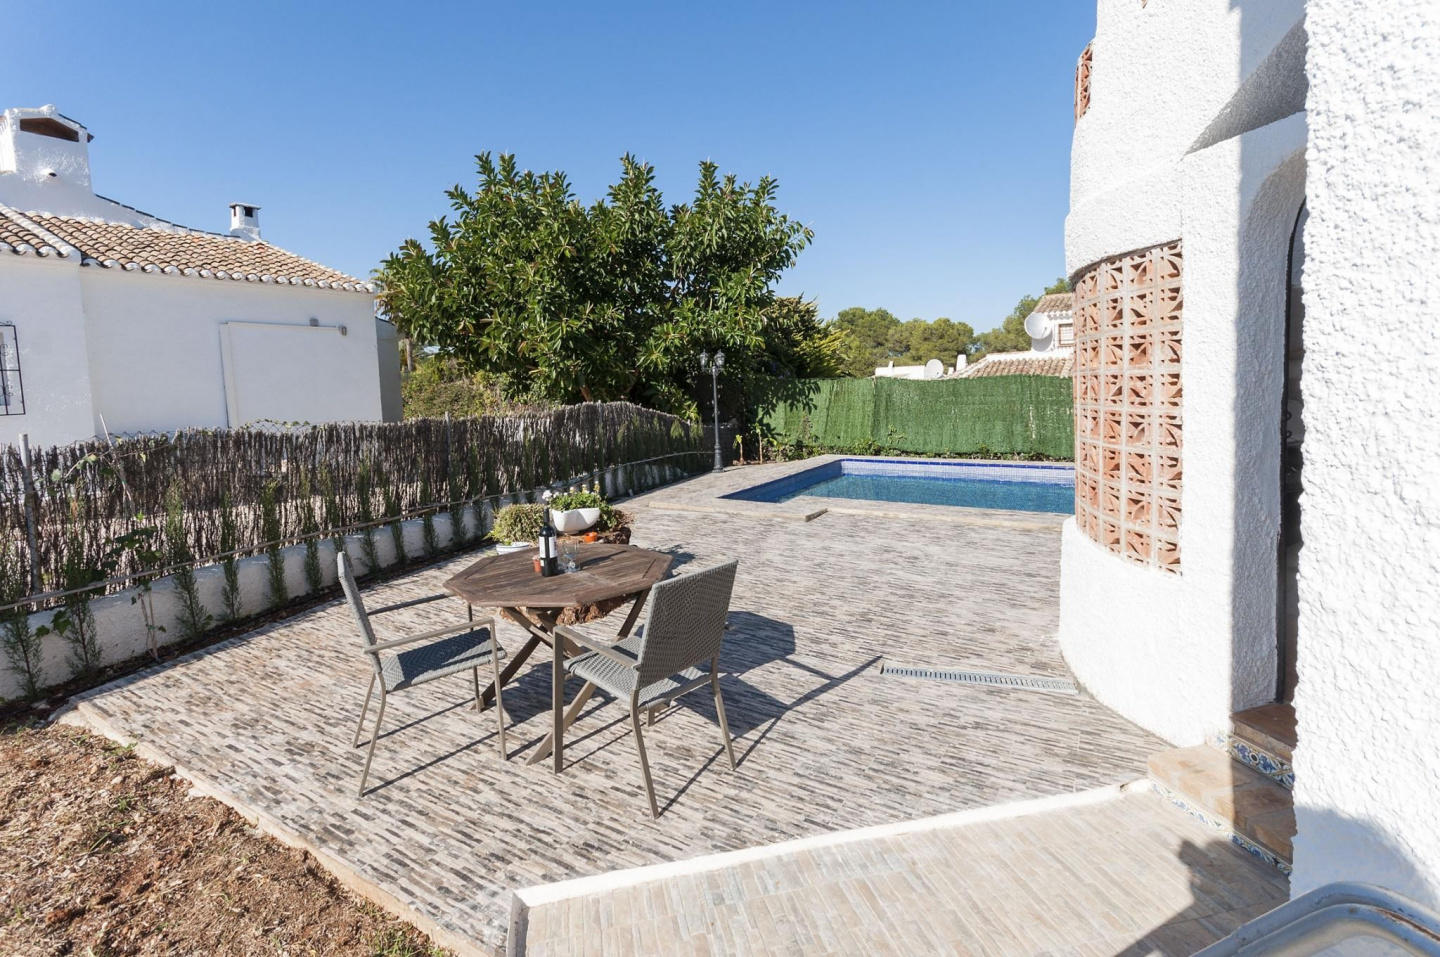 Spacious villa in the center of El Tosalet with... Slide-2